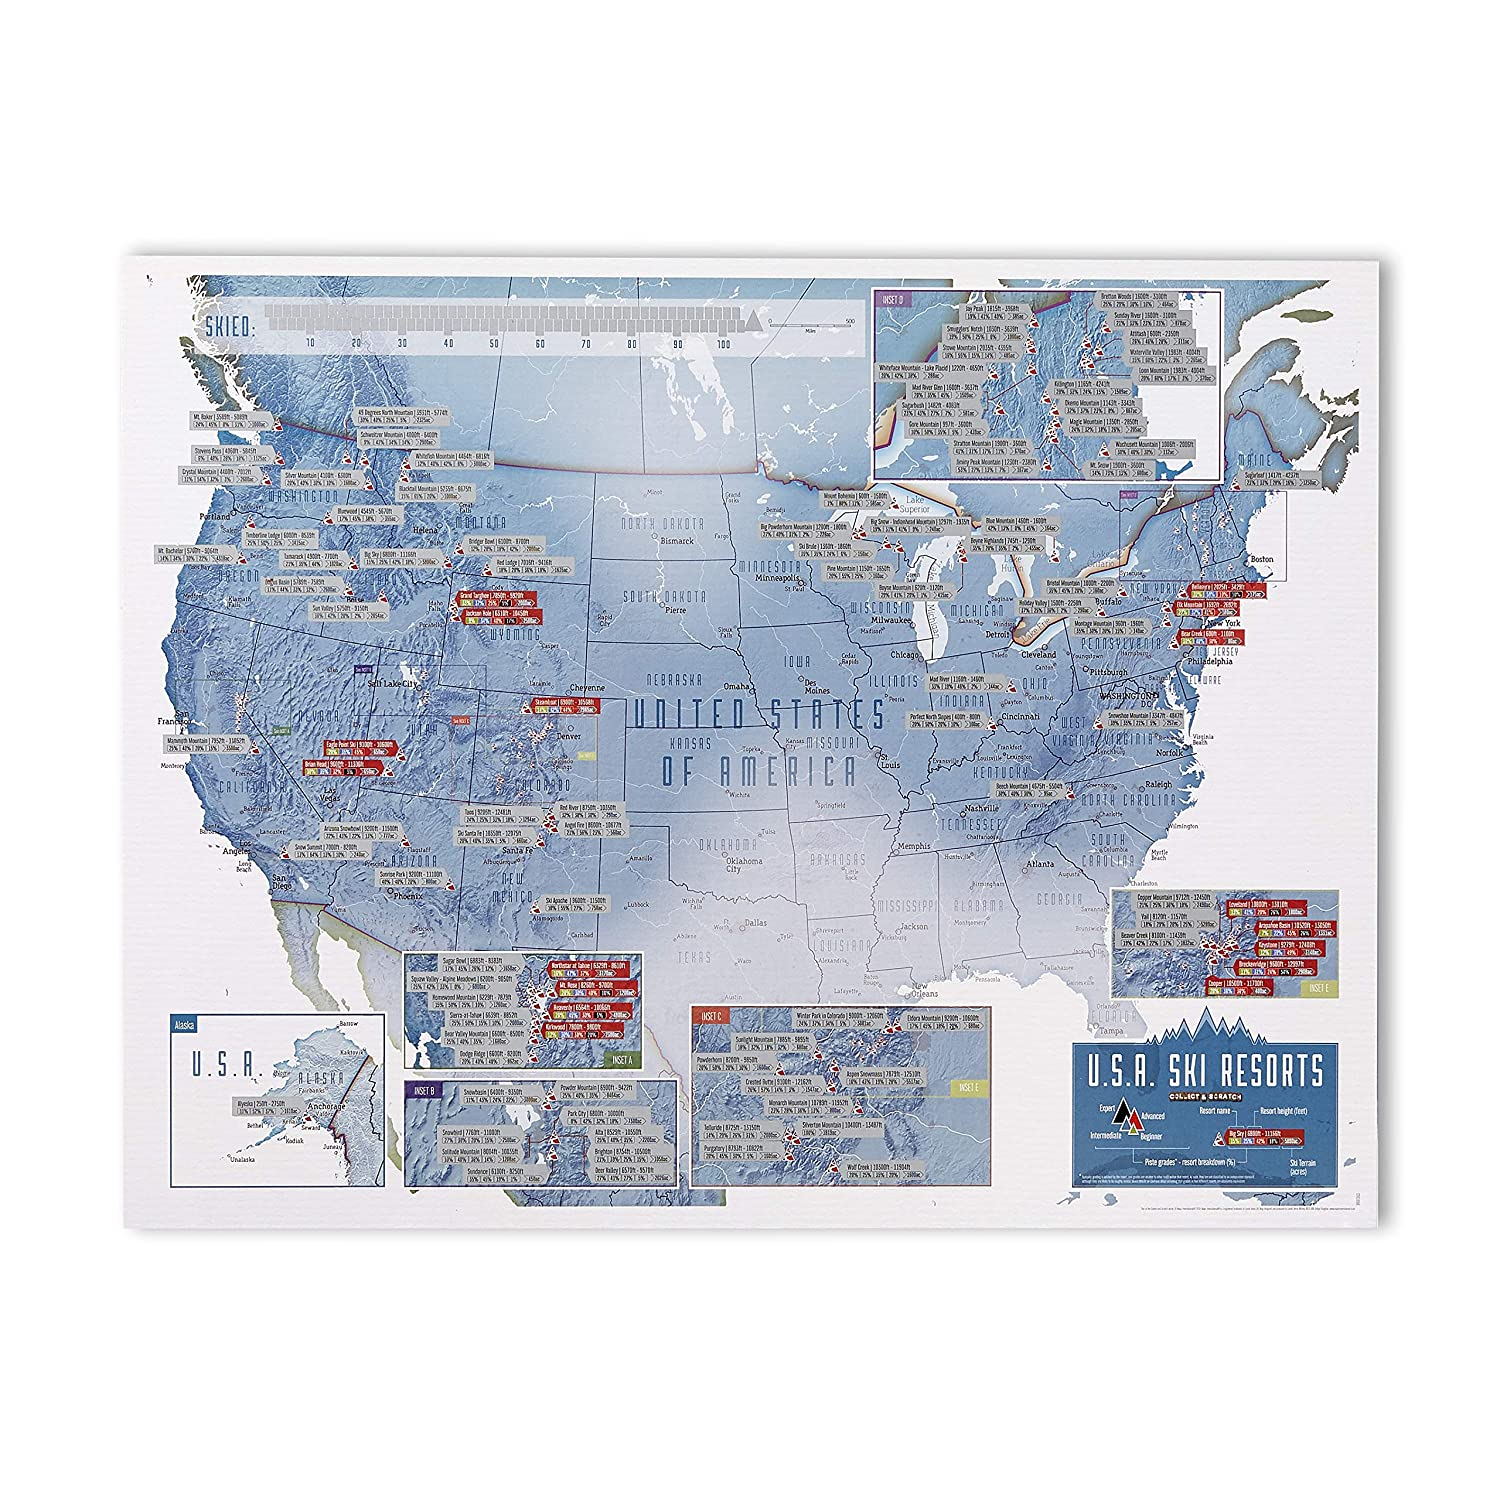 Large Print Map Of North Dakota on print map of states, print map of ontario canada, print map of oklahoma city, print map of st. augustine, print map of philadelphia, print map of houston,